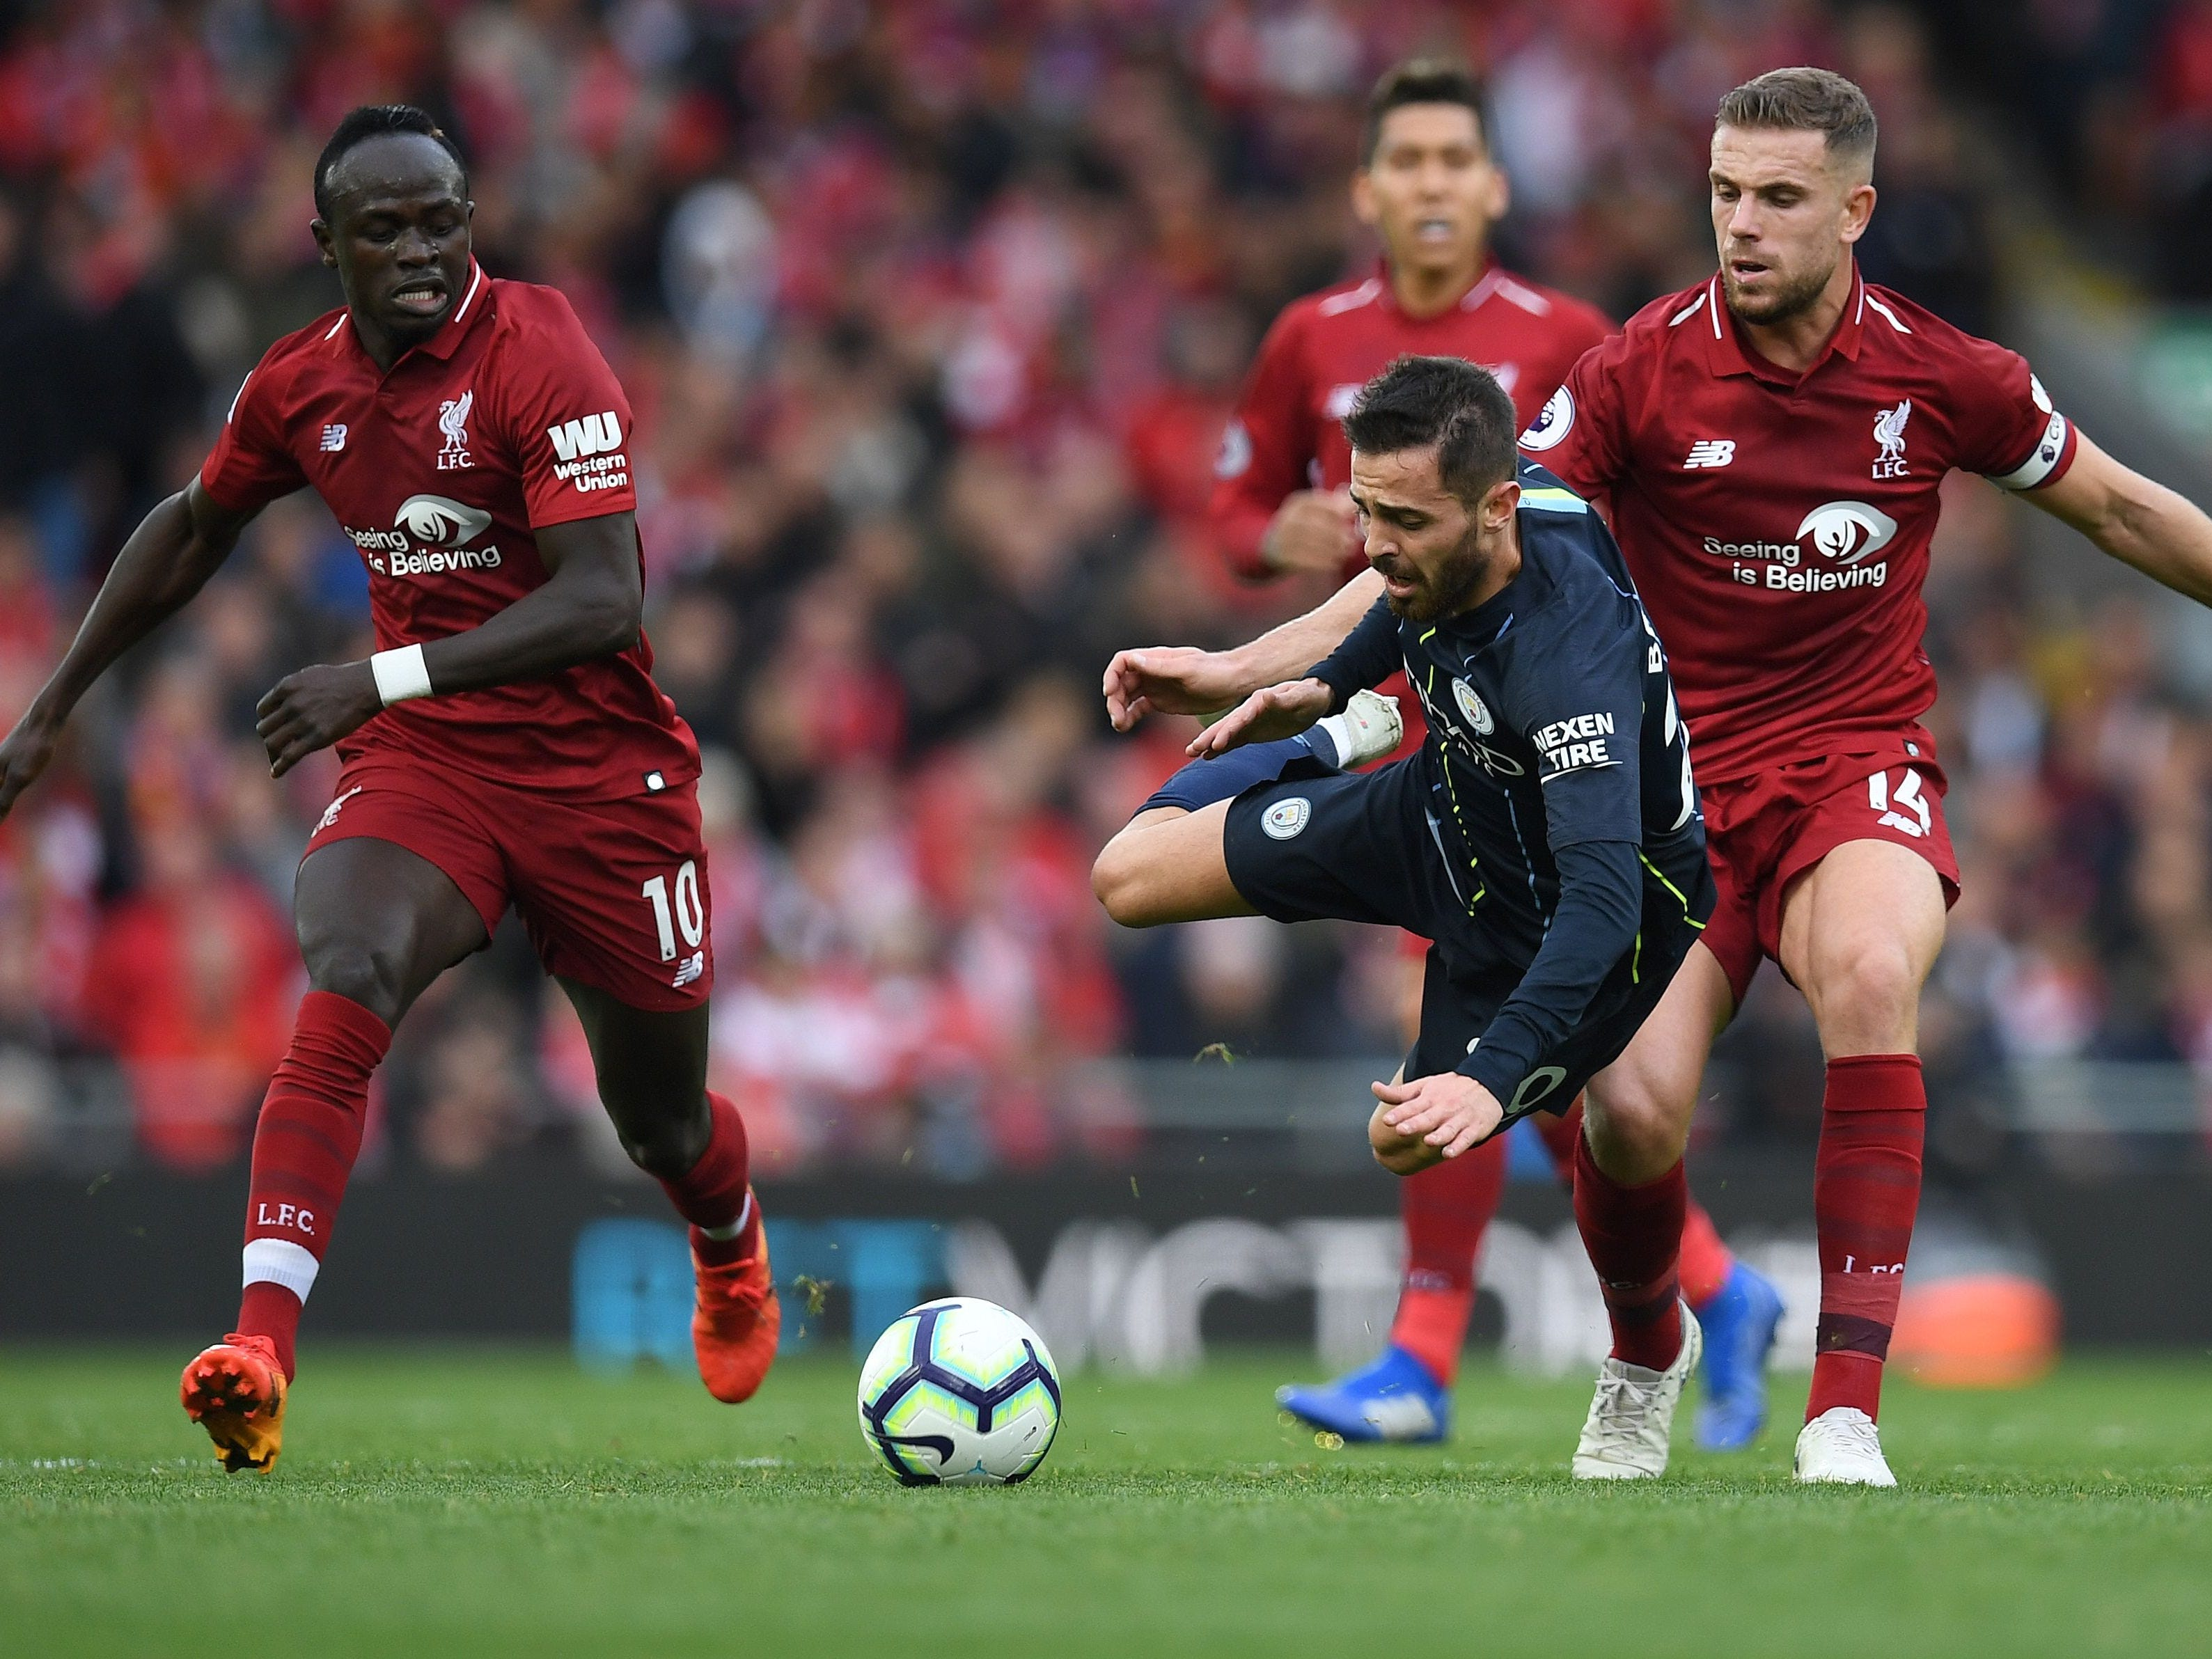 Liverpool's Jordan Henderson vies with Manchester City's Bernardo Silva during the English Premier League football match between Liverpool and Manchester City at Anfield in Liverpool.